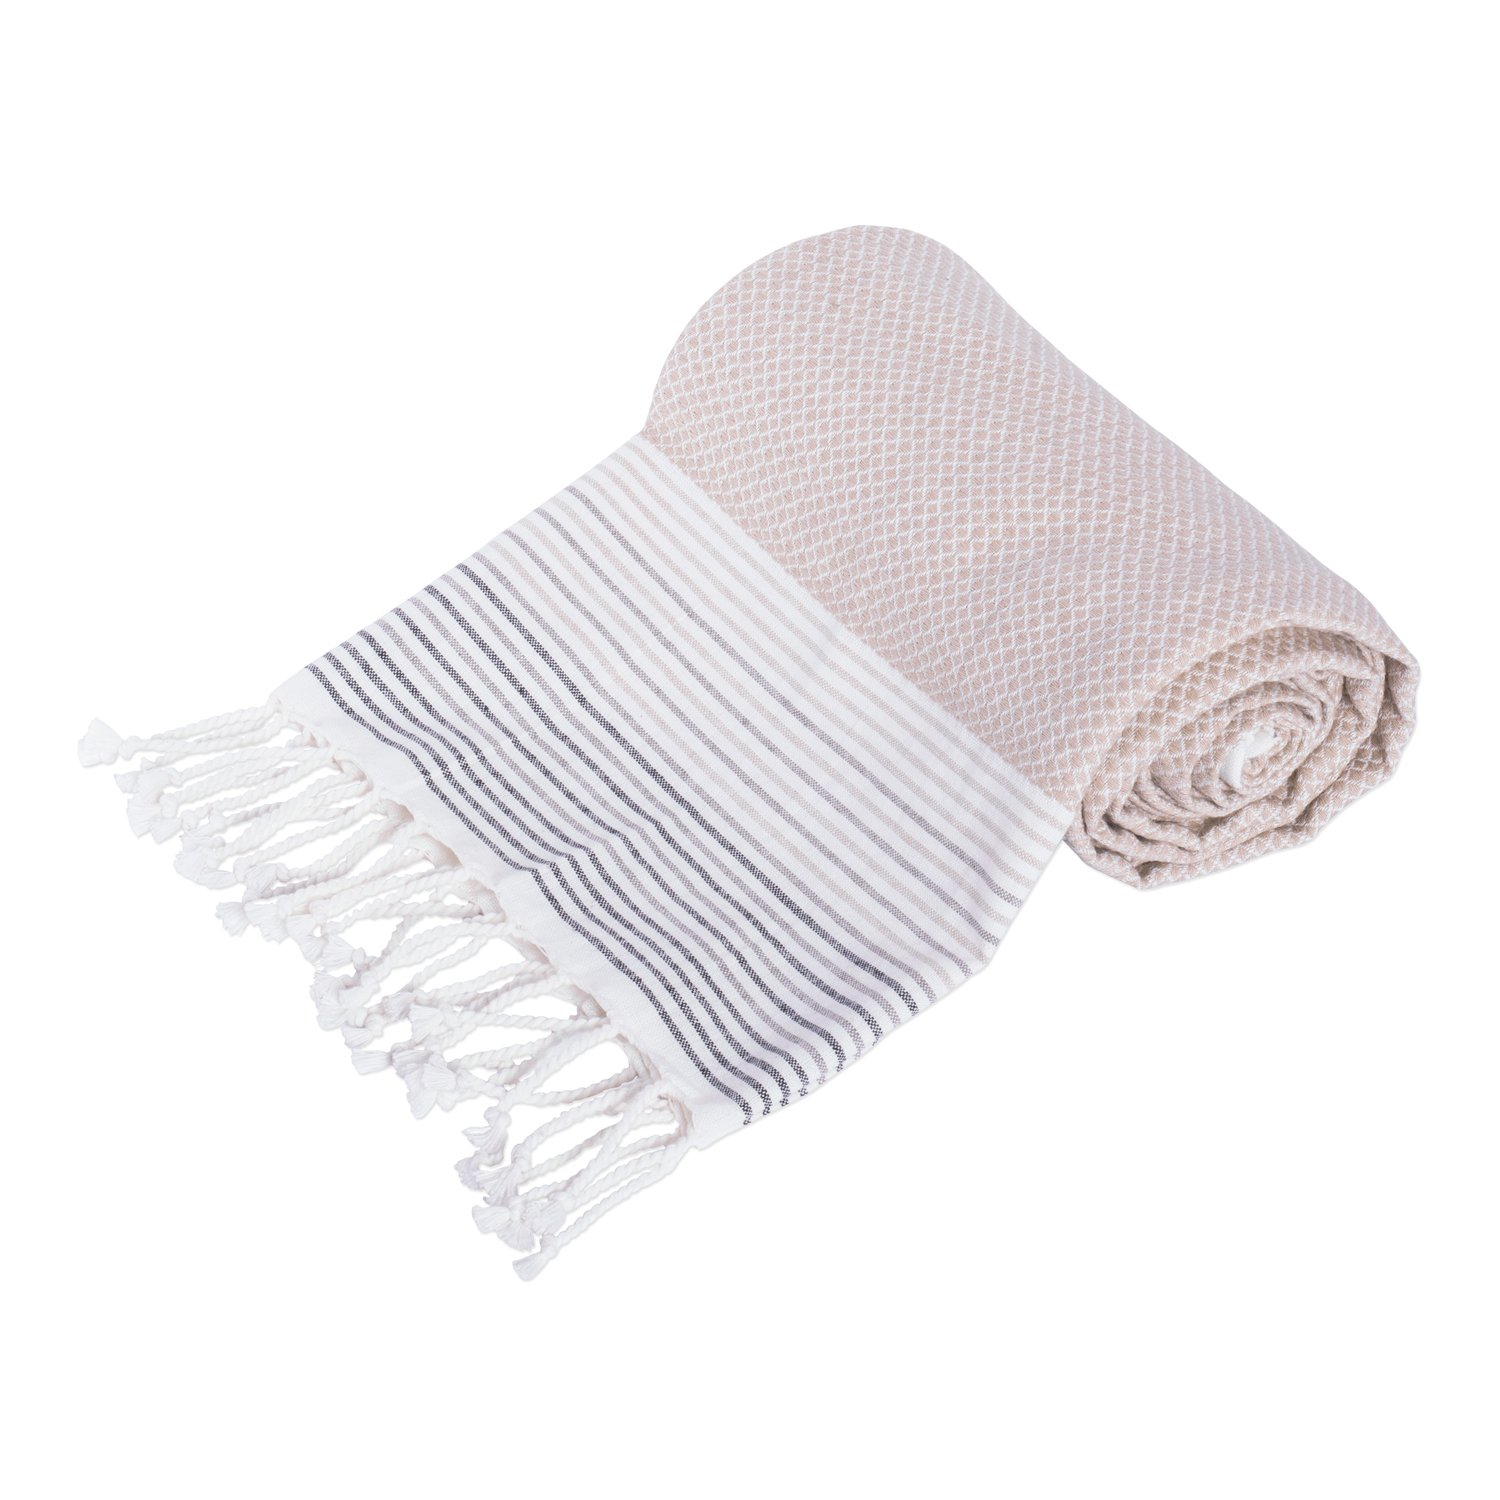 DII Peshtemal Turkish Super Soft, Absorbent, Oversized Bath Towel, Throw, Blanket Fringe for Chair, Couch, Picnic, Camping, Beach, Yoga, Pilates, Everyday Use, 39 x 71 - Taupe Stripe by DII